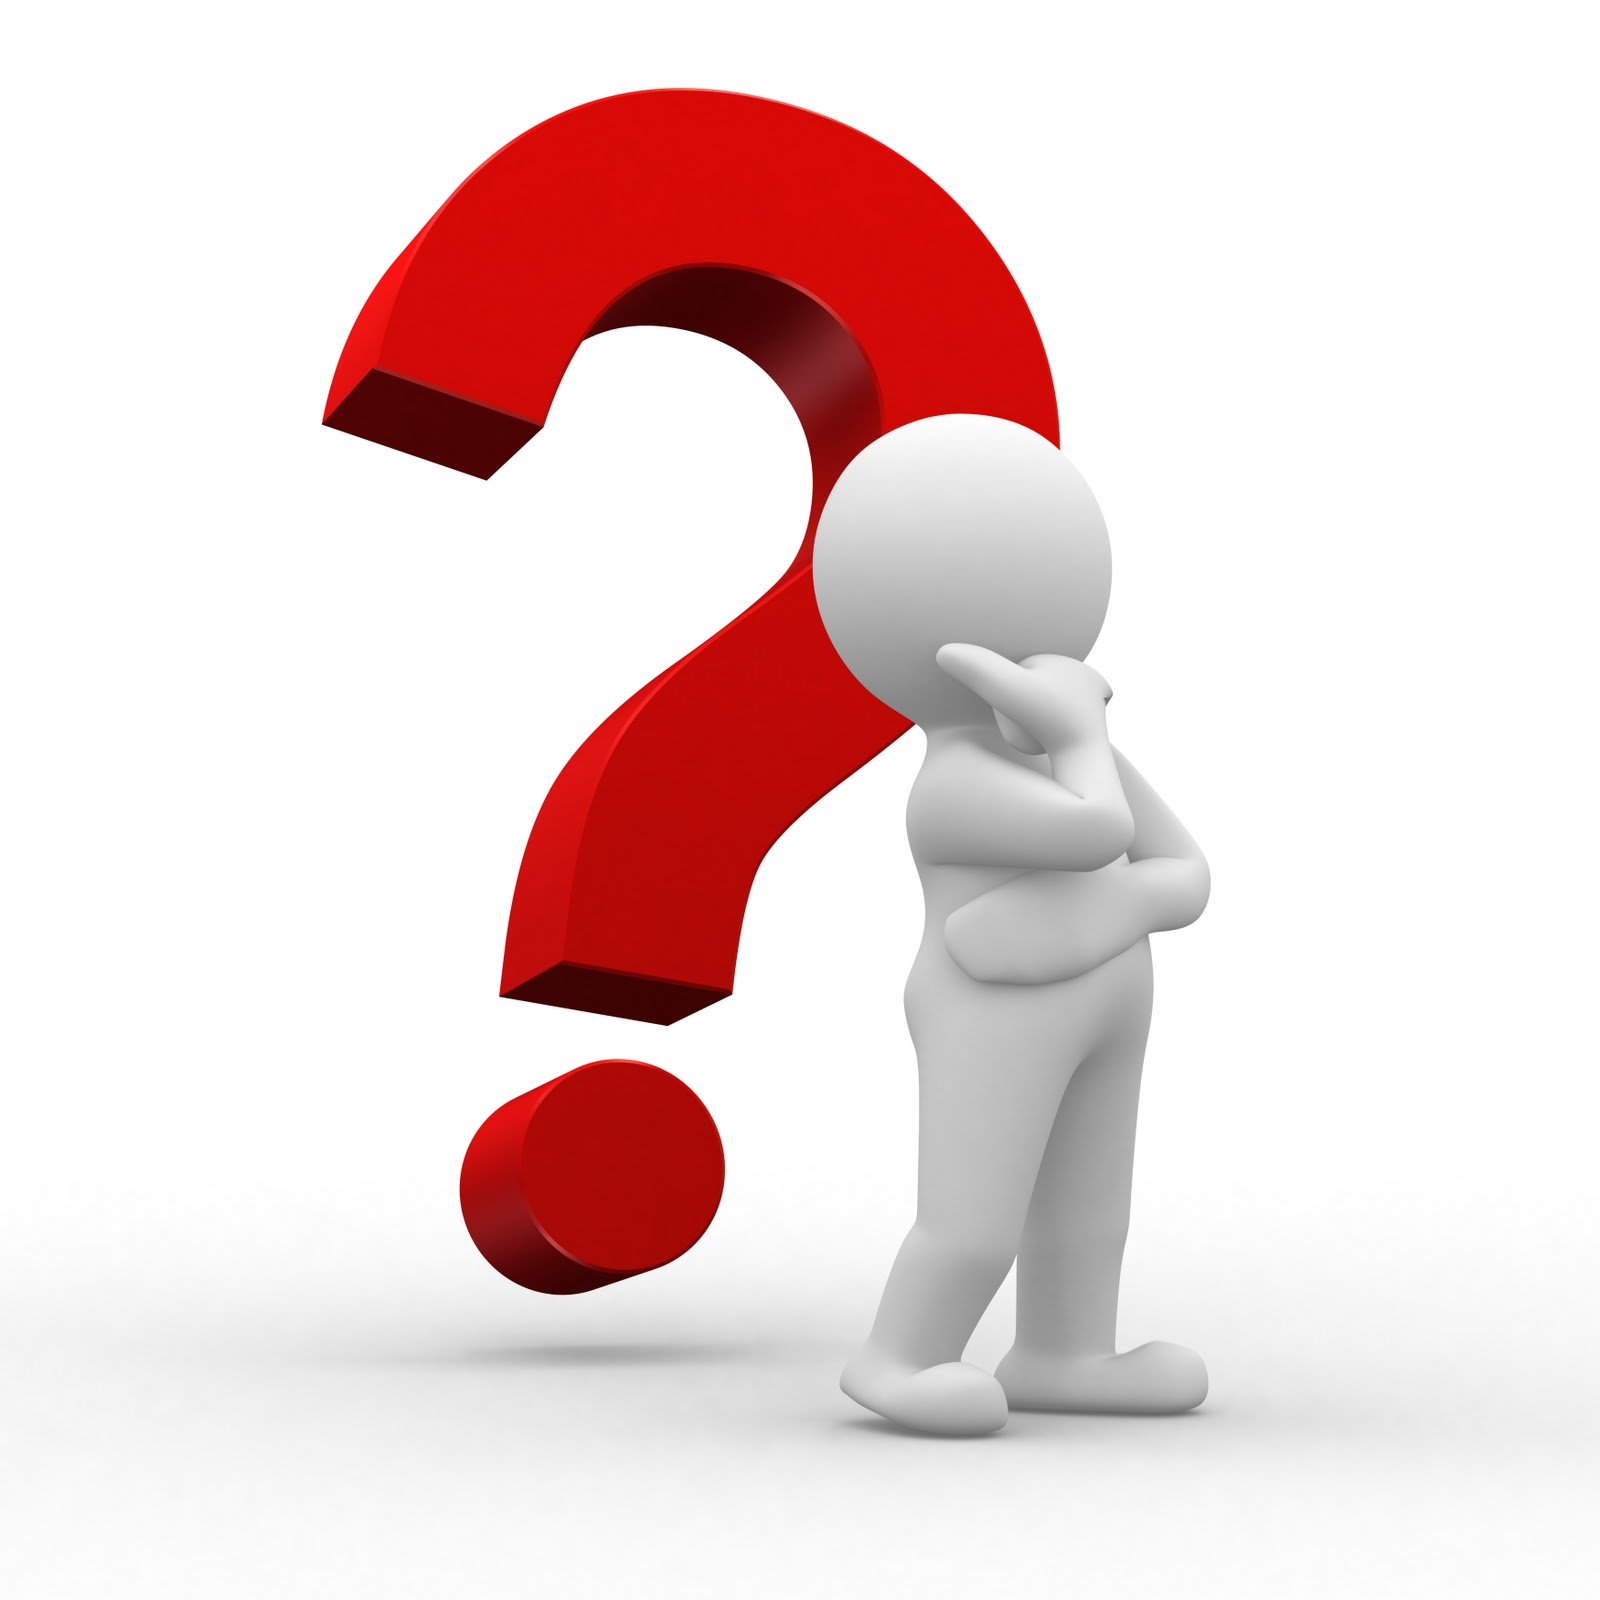 Q&a cliparts image library library Question mark pictures of questions marks clipart cliparting ... image library library